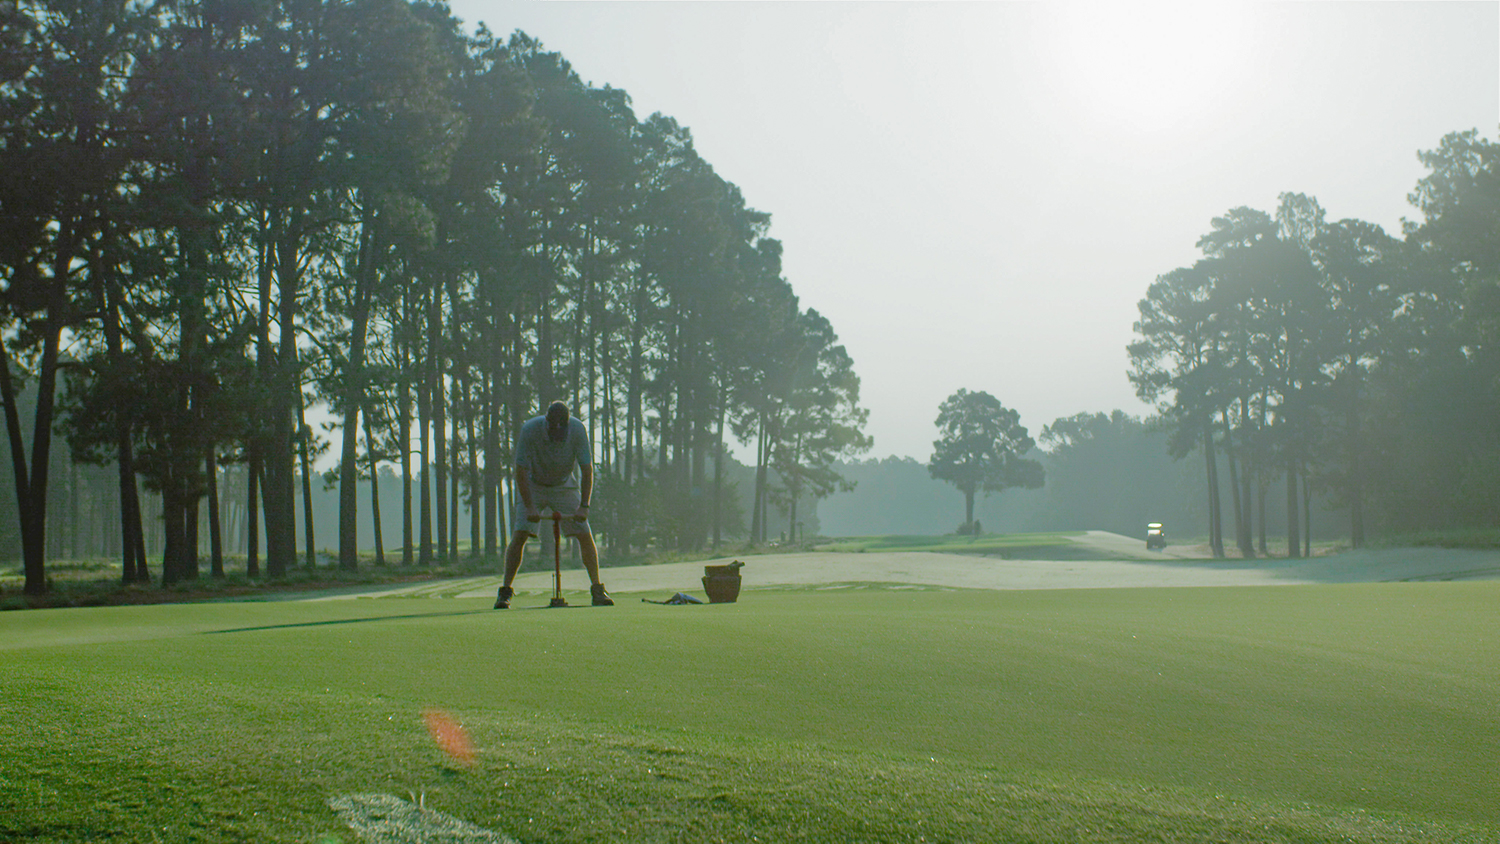 Cutting a golf course cup at Pinehurst No. 2